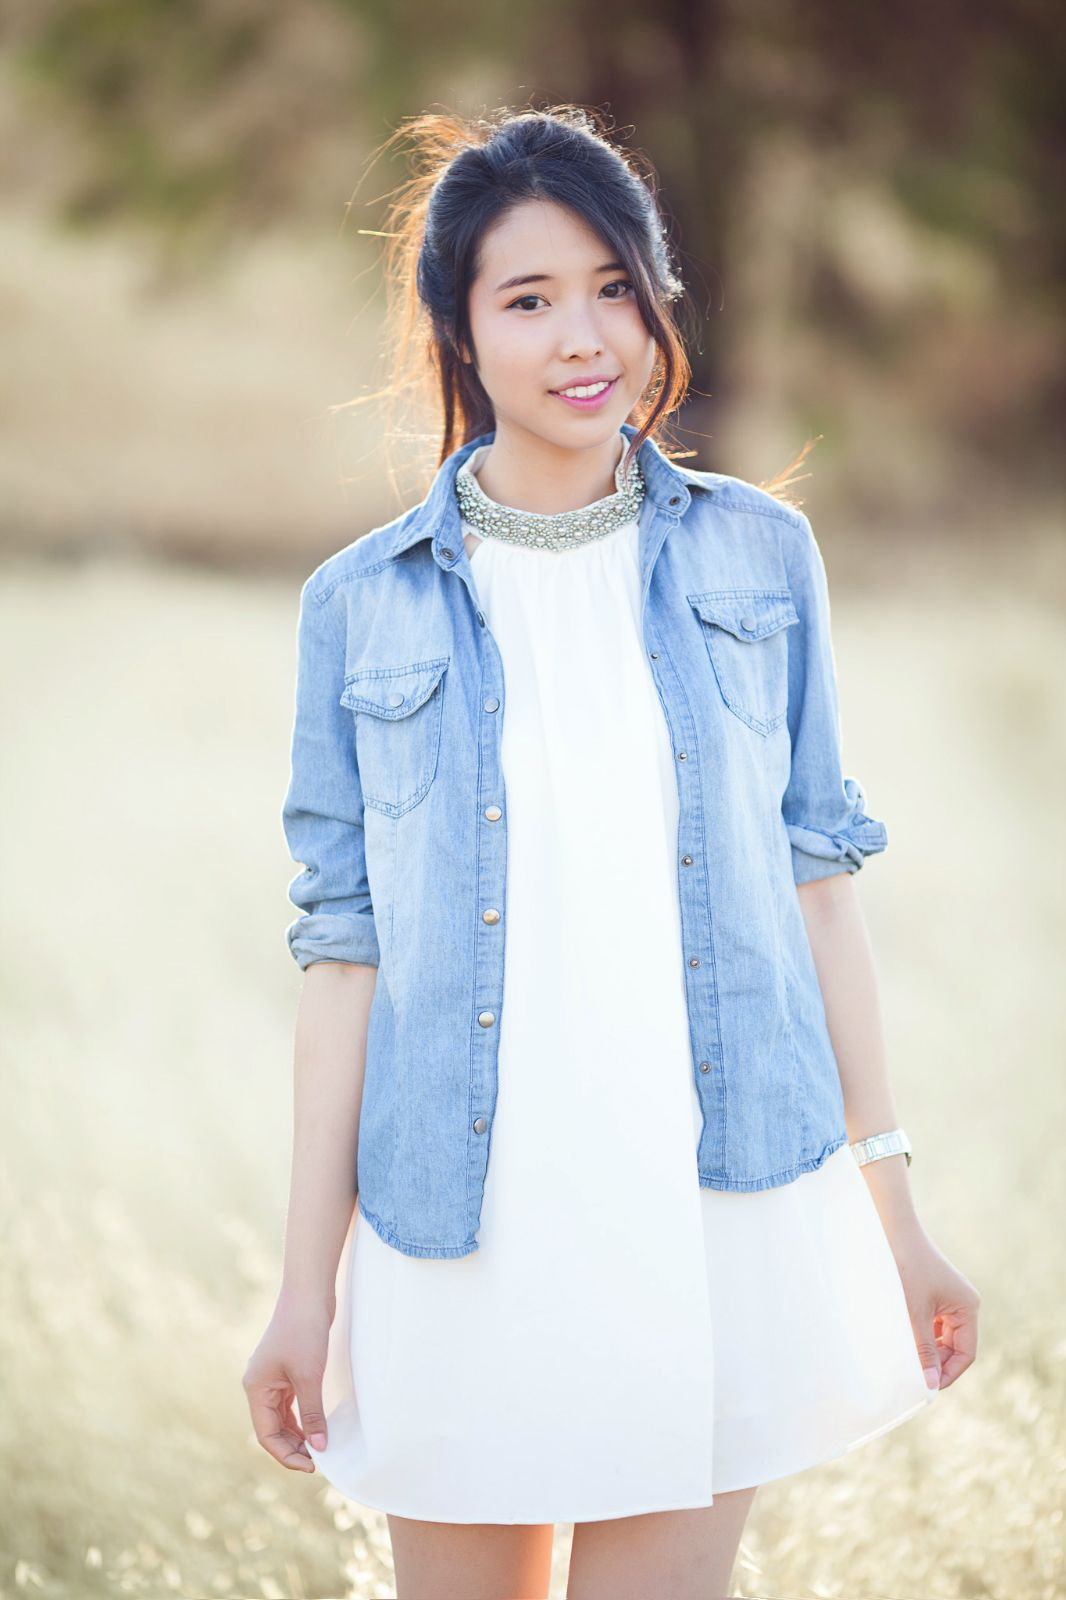 b055c585ab ally gong tobi photoshoot white chiffon dress blue denim shirt asian girl  model fashion blogger bay